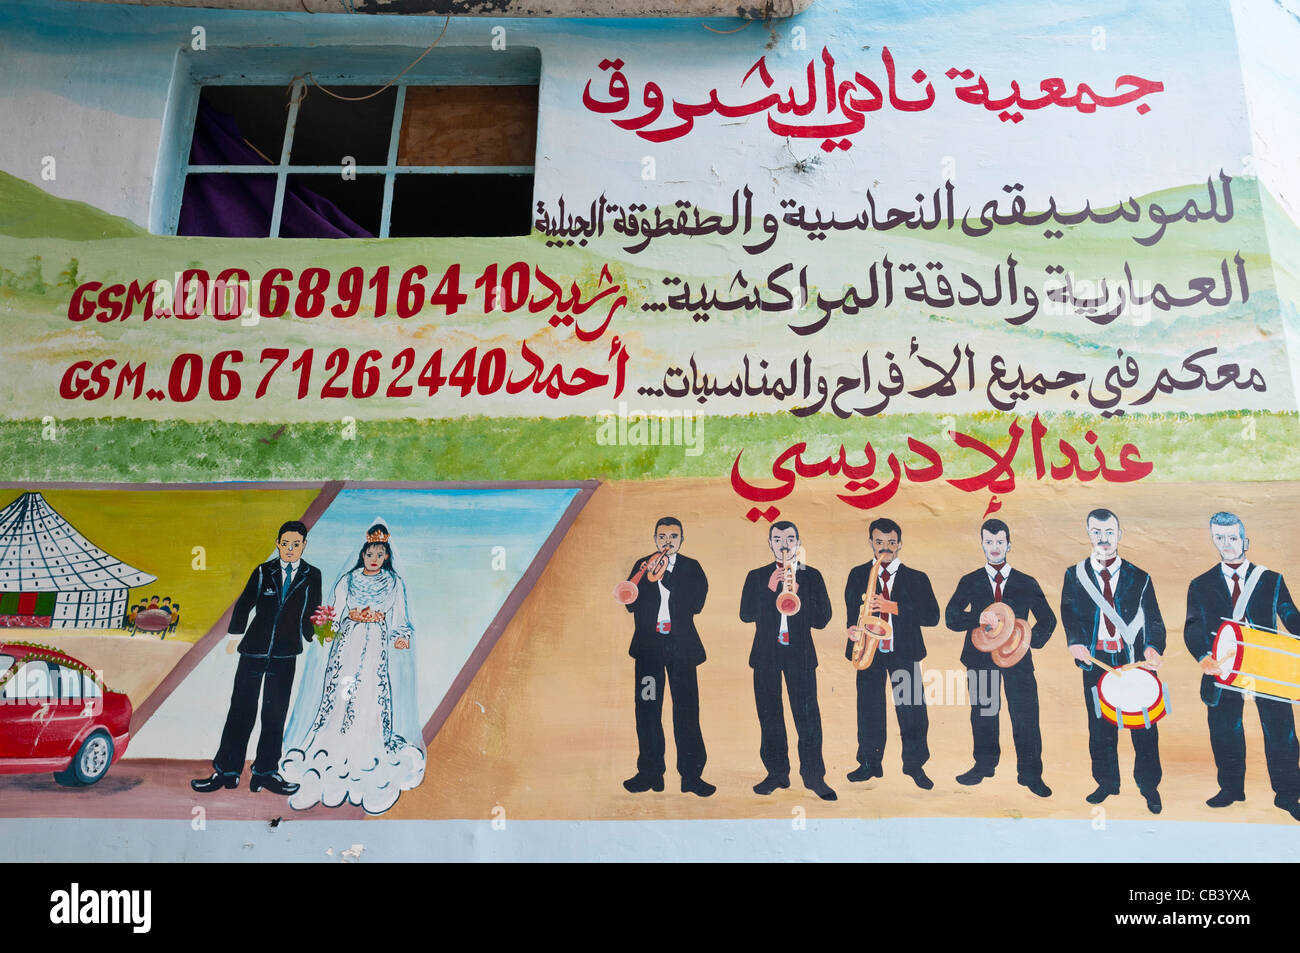 Mural of wedding band ,Tangier, Morocco, North Africa Stock Photo